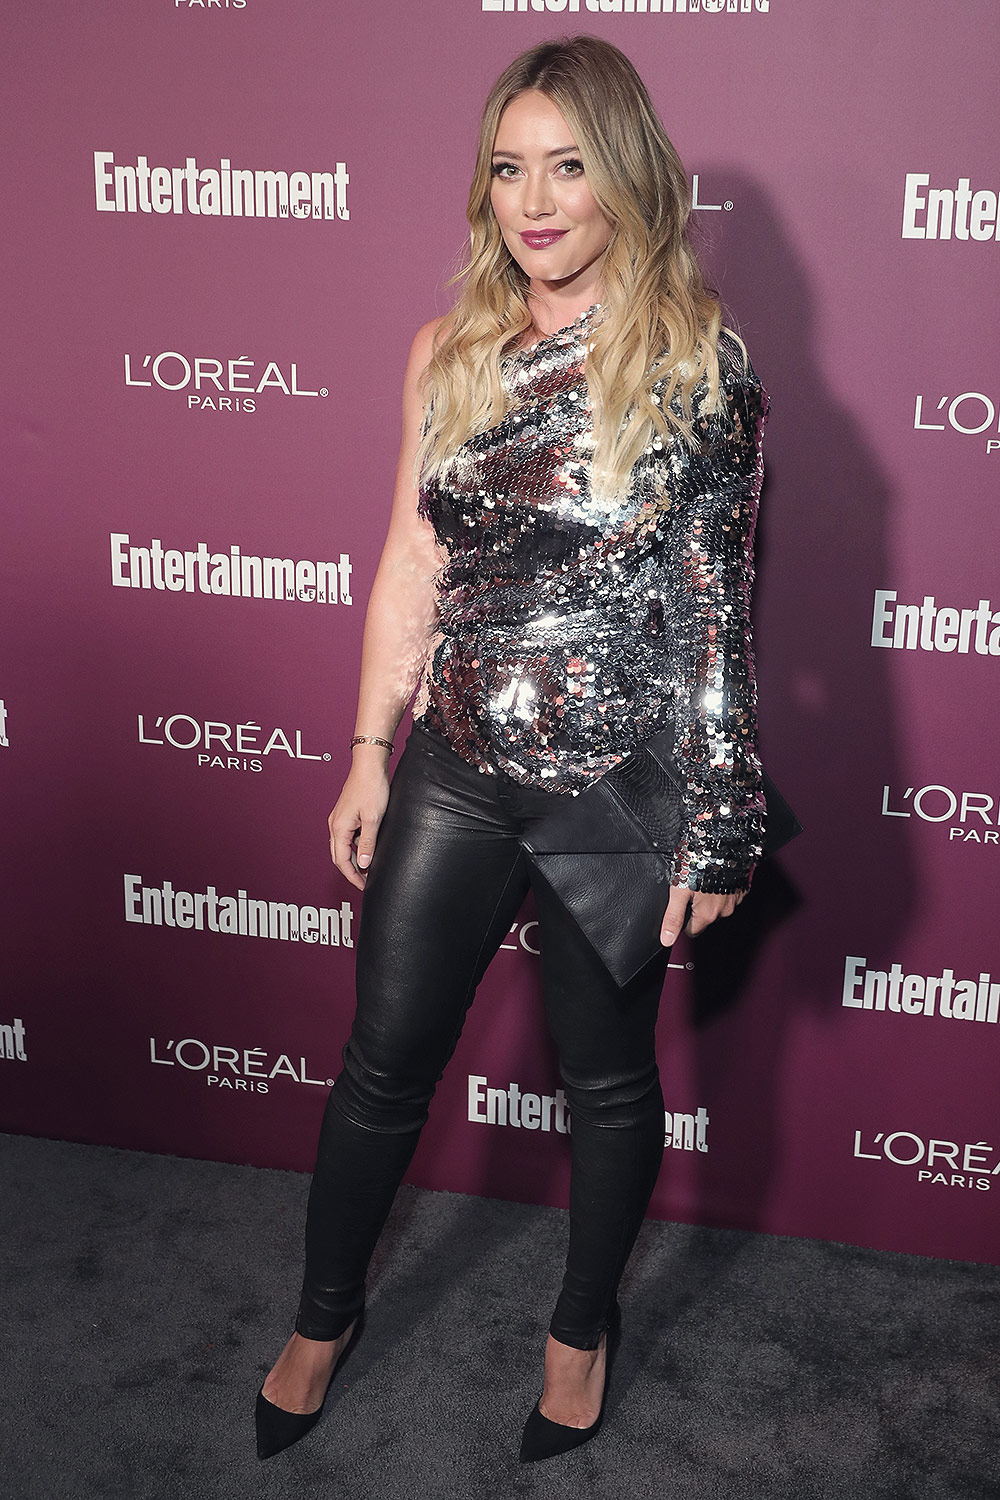 Hilary Duff attends the 2017 Entertainment Weekly Pre-Emmy Party